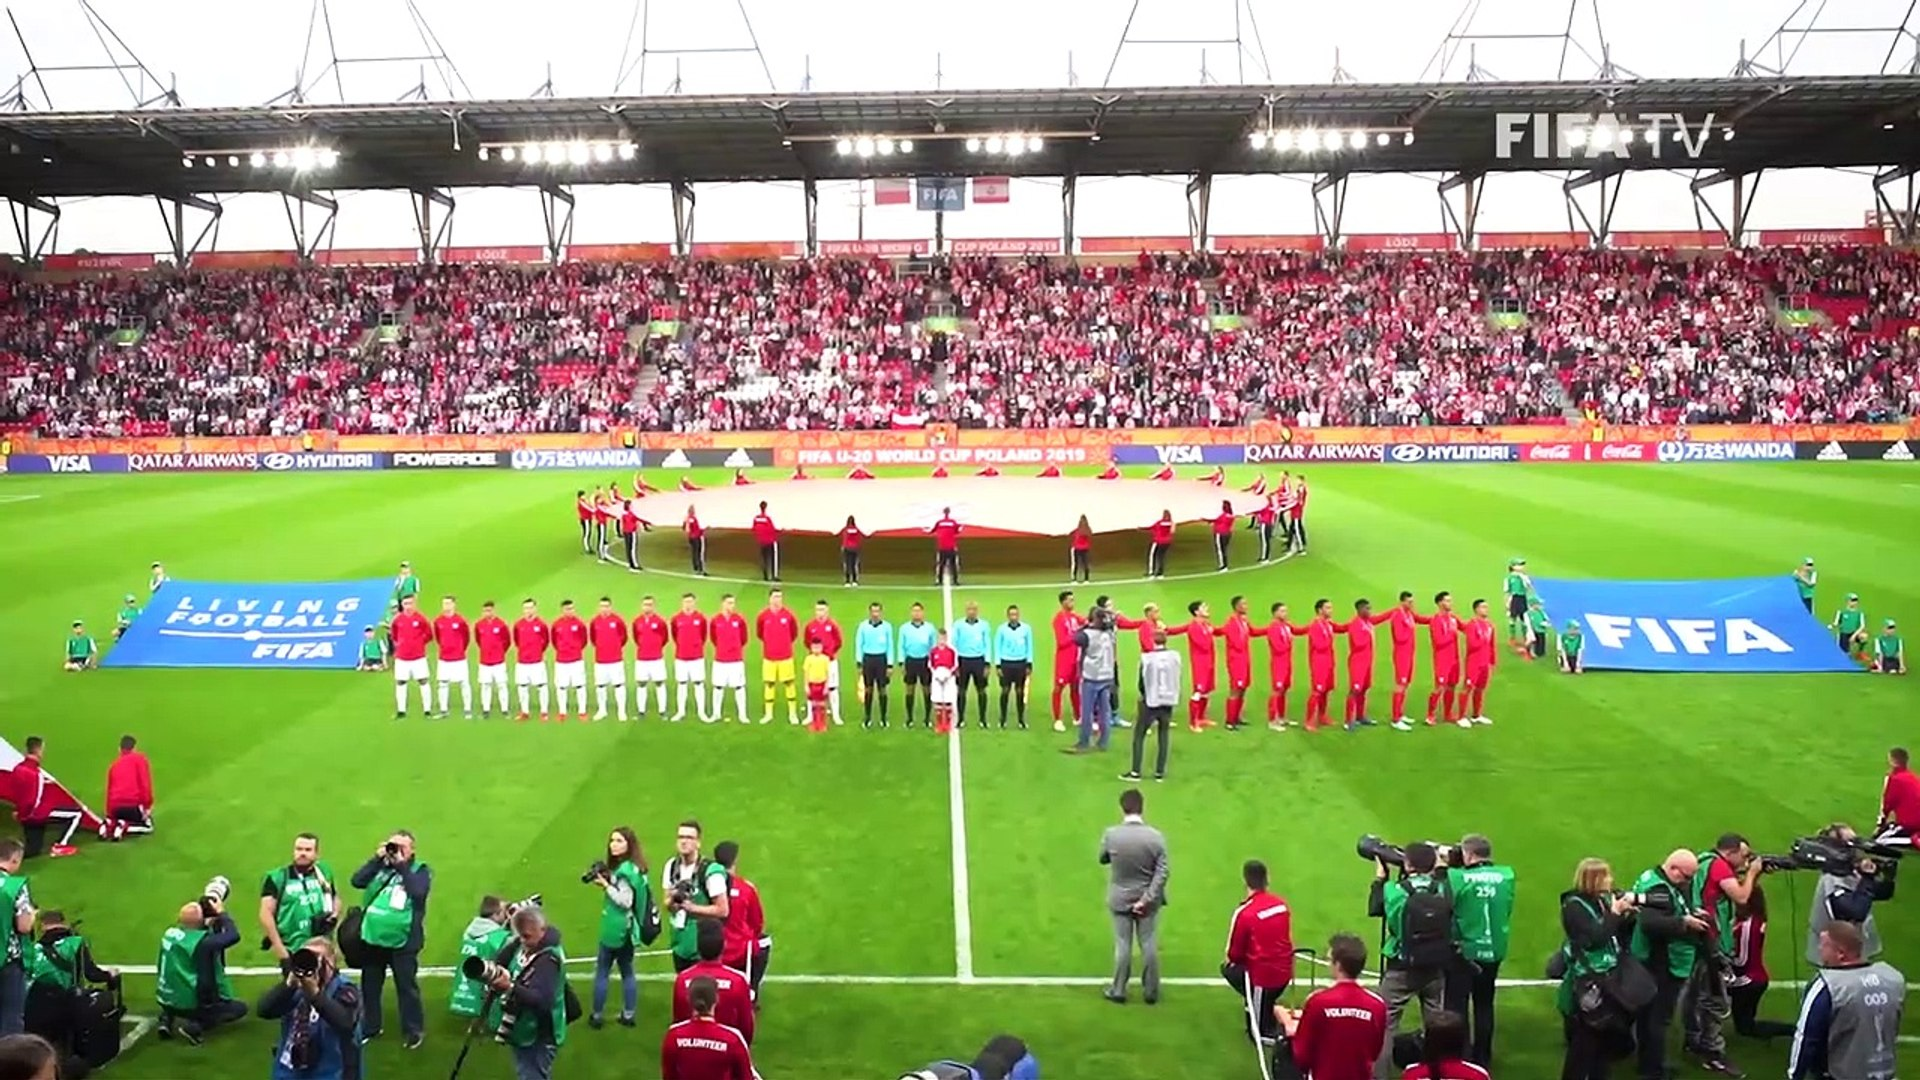 FIFA U-20 World Cup Poland 2019 - The group stage in review